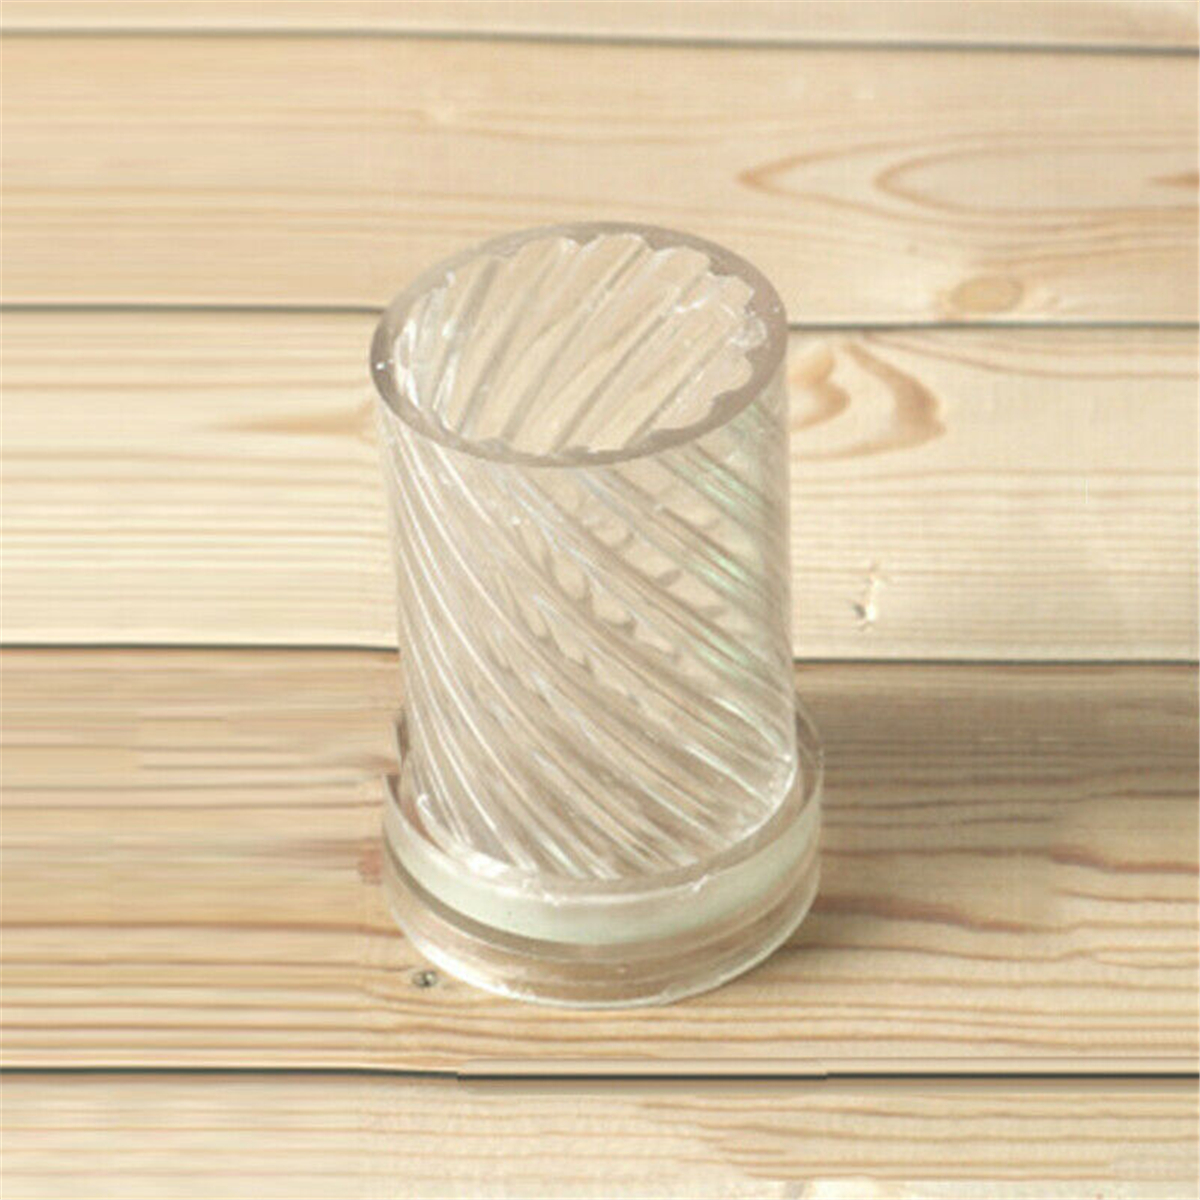 Spiral Shape Model Candle Moulds Tools Plastic Resin 1 pcs Candle Making Latest